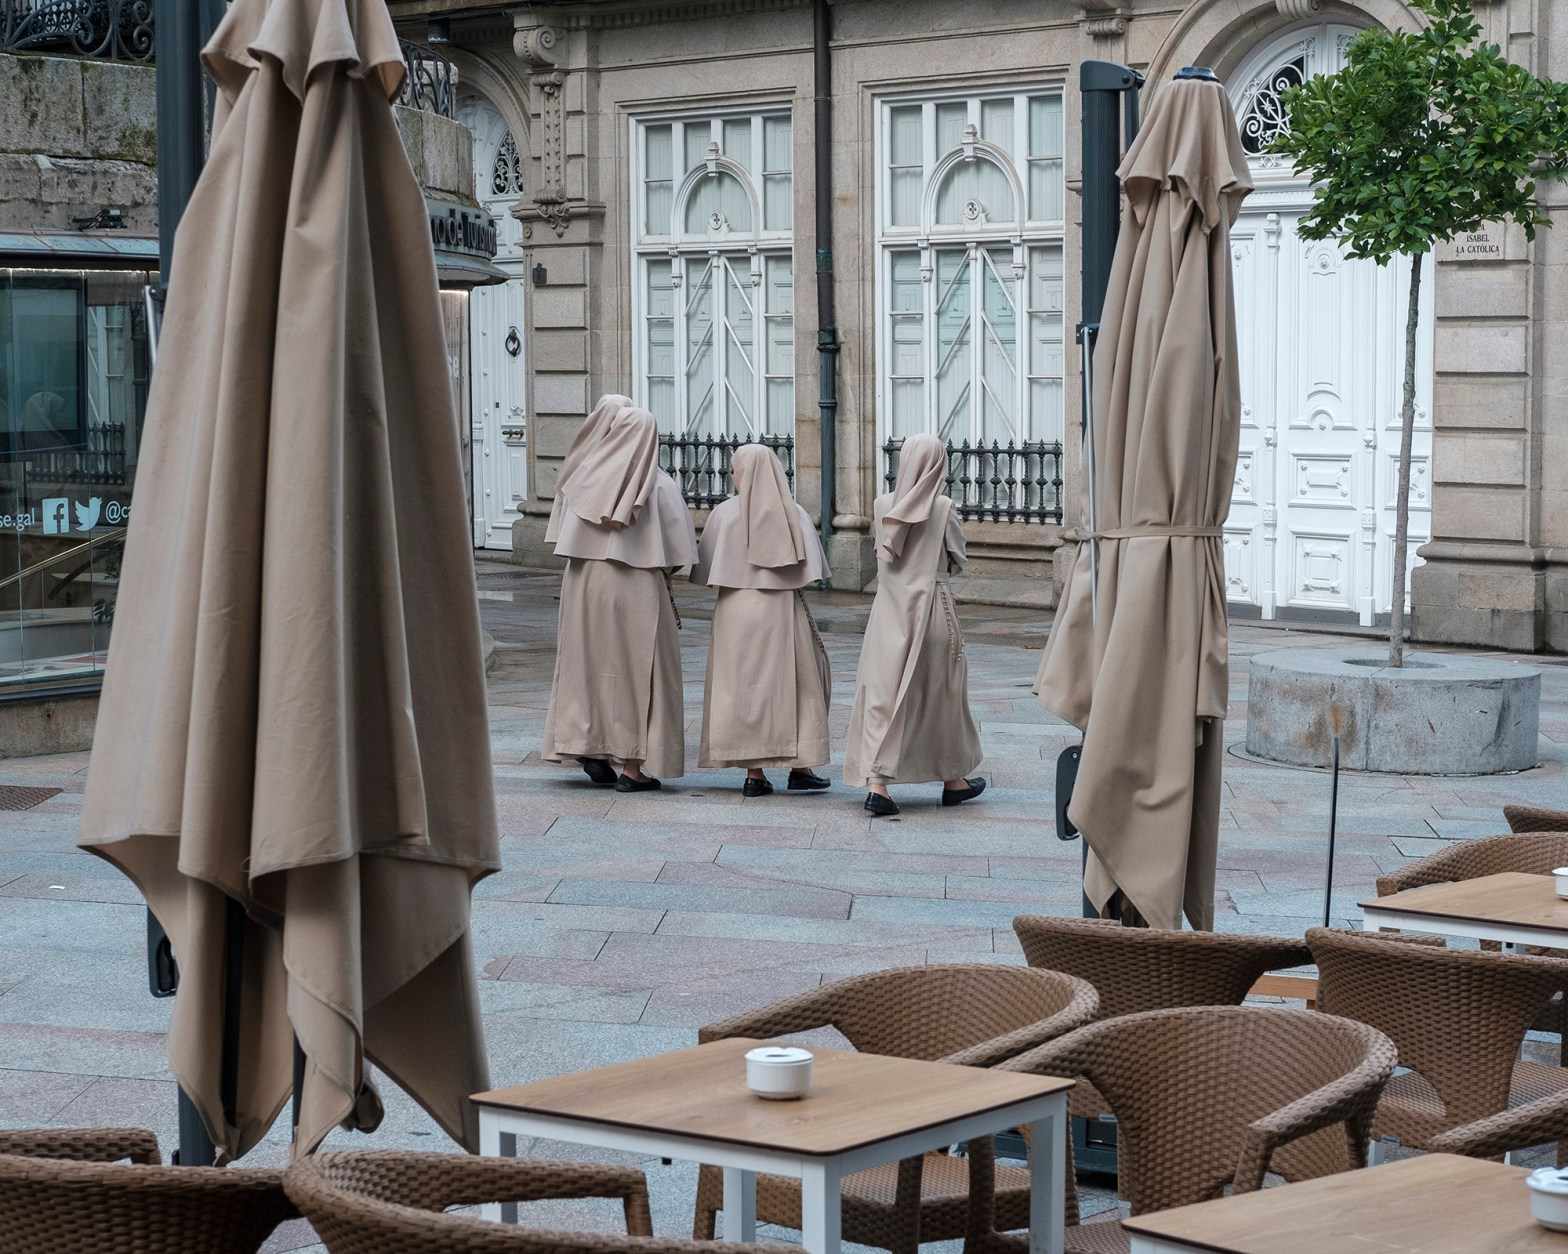 Nuns walk down the street matching the colour and texture of the canopies in the adjacent cafe